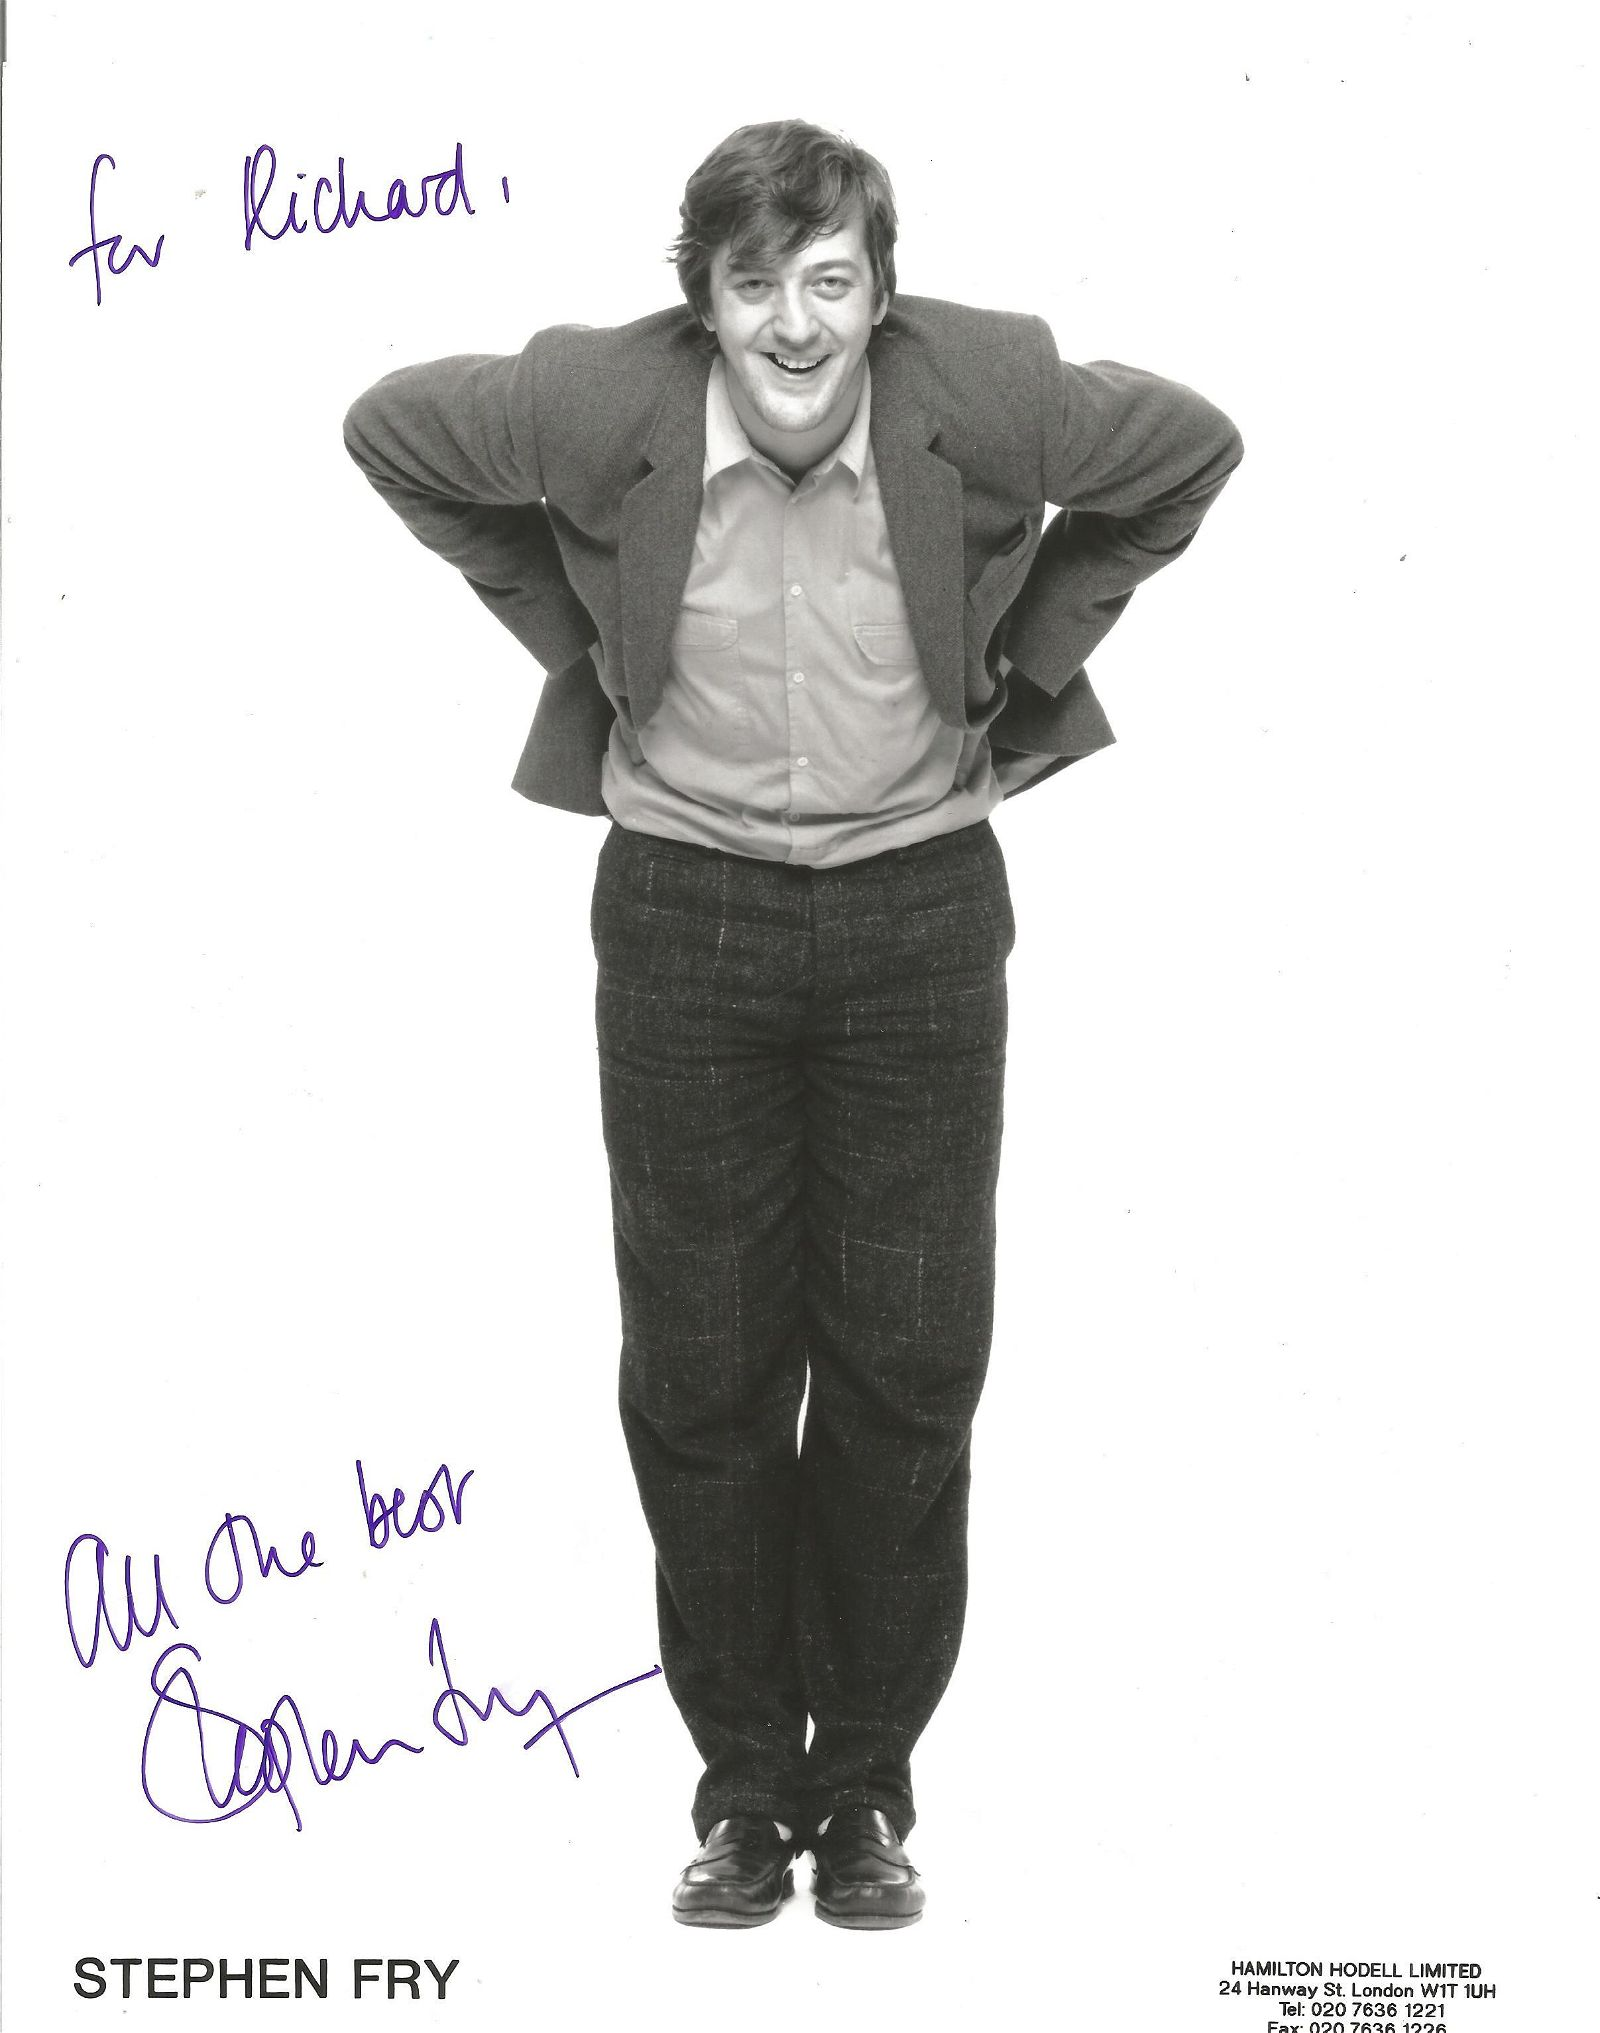 Stephen Fry Signed 10x8 Colour Photo. Dedicated. Good